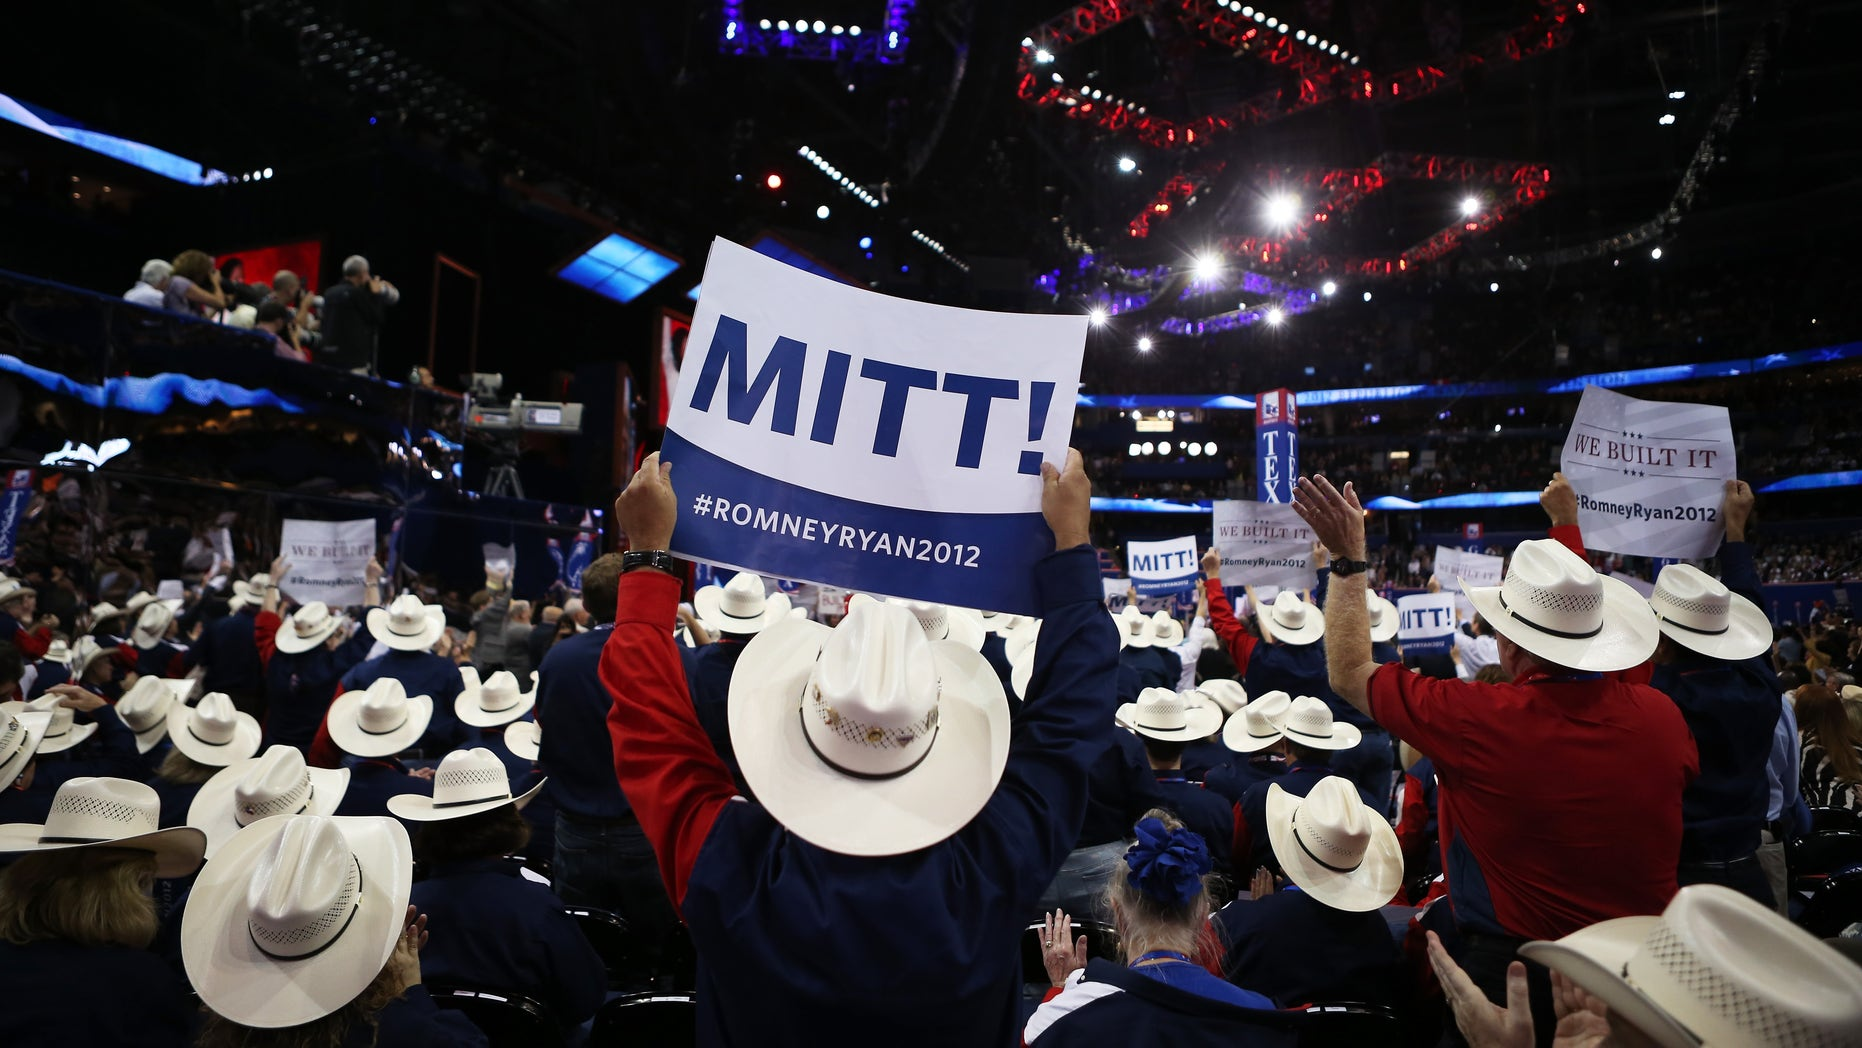 """TAMPA, FL - AUGUST 28:  People from the Texas delegation hold signs that say  """"Mitt!"""" during the Republican National Convention at the Tampa Bay Times Forum on August 28, 2012 in Tampa, Florida. Today is the first full session of the RNC after the start was delayed due to Tropical Storm Isaac.  (Photo by Chip Somodevilla/Getty Images)"""